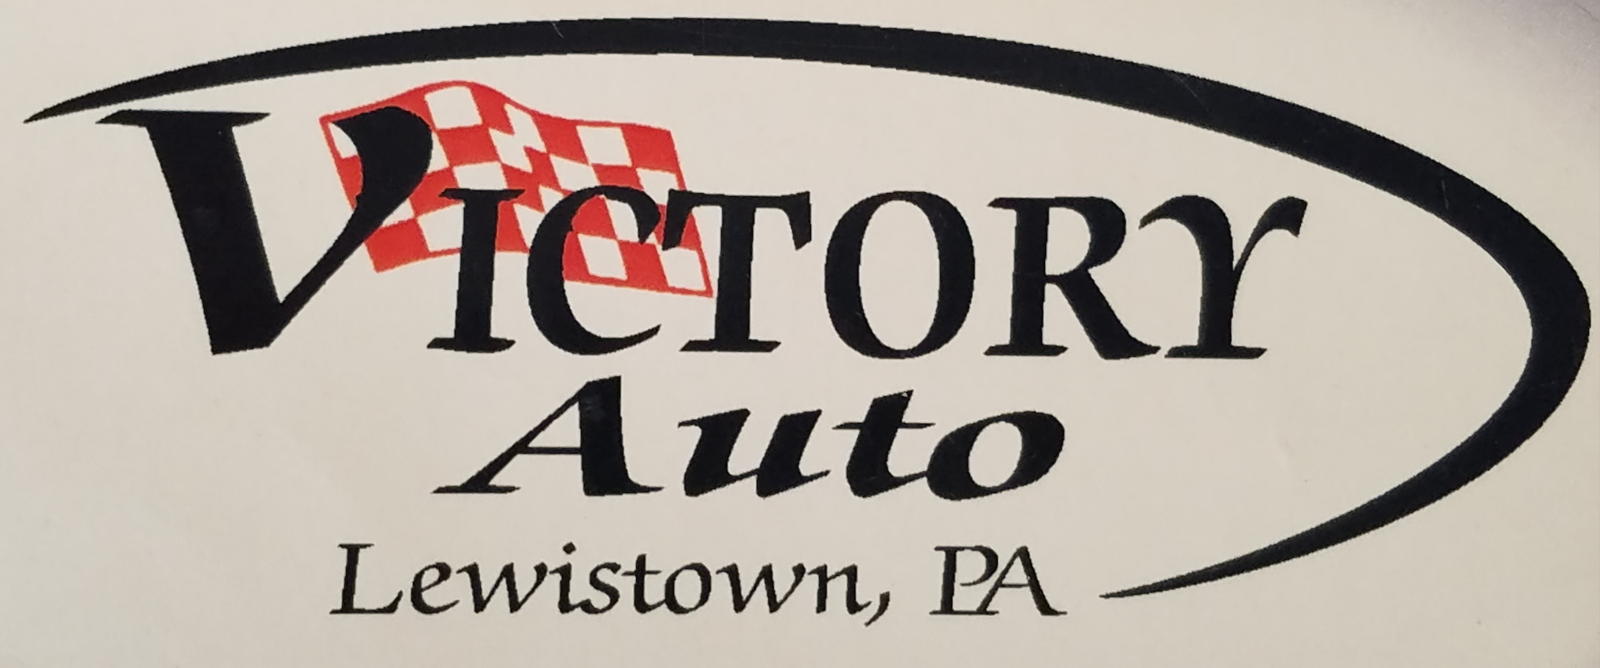 Victory Auto Lewistown Pa Read Consumer Reviews Browse Used And New Cars For Sale